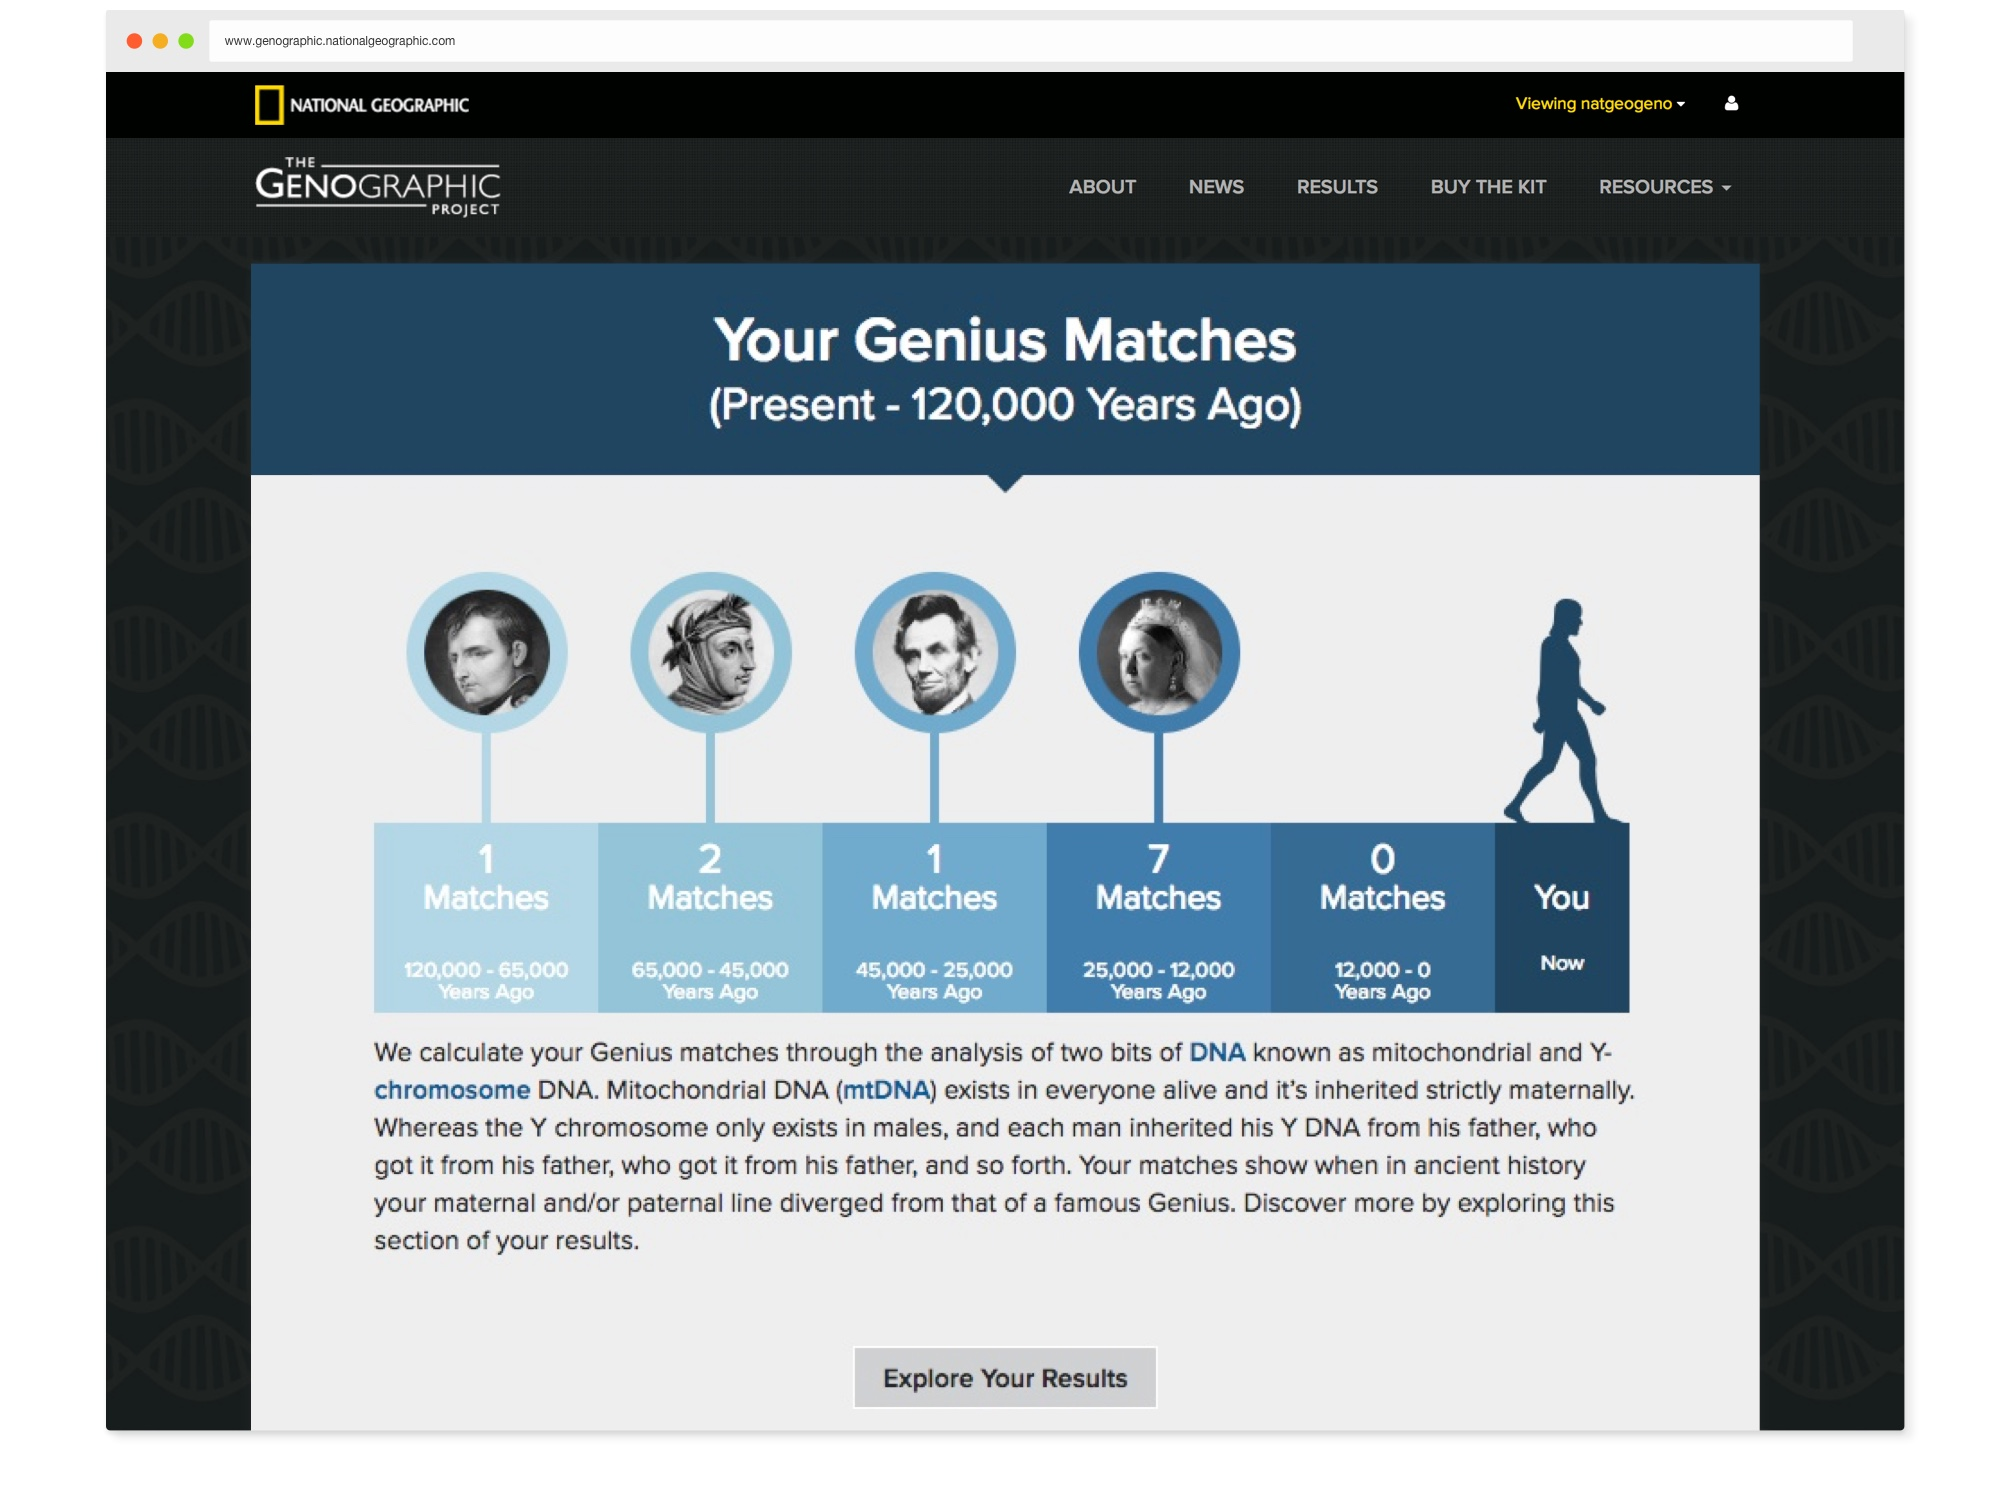 National geographic geno 2 0 project / Www carrentals com